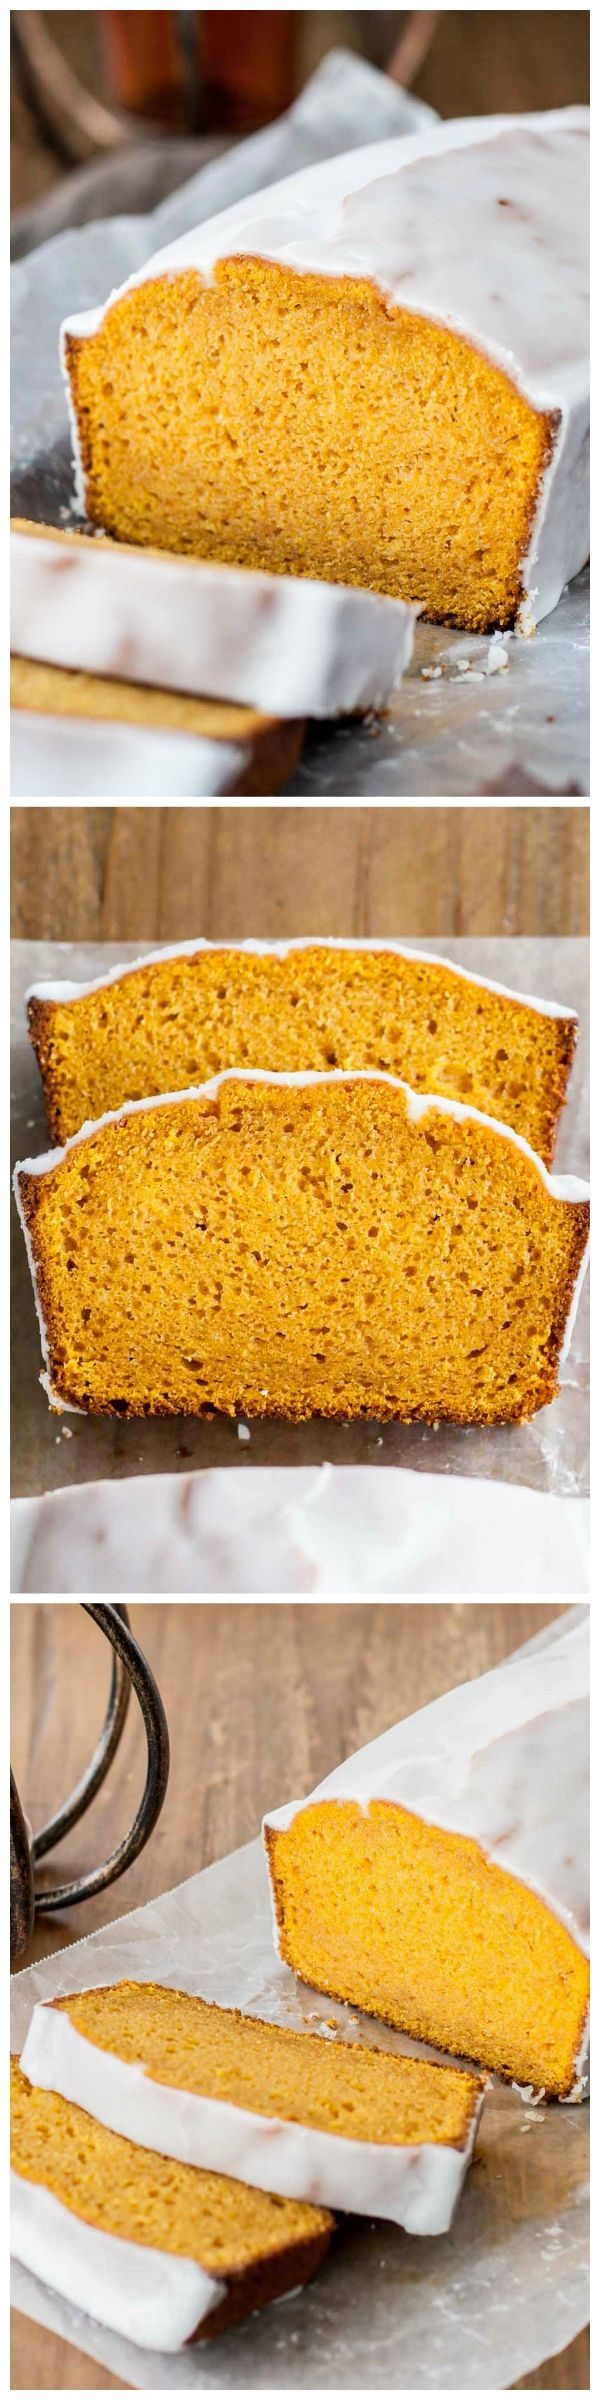 Pumpkin Bread Recipe - This is THE BEST #Pumpkin bread you will ever make. Easy, one-bowl, and delicious!